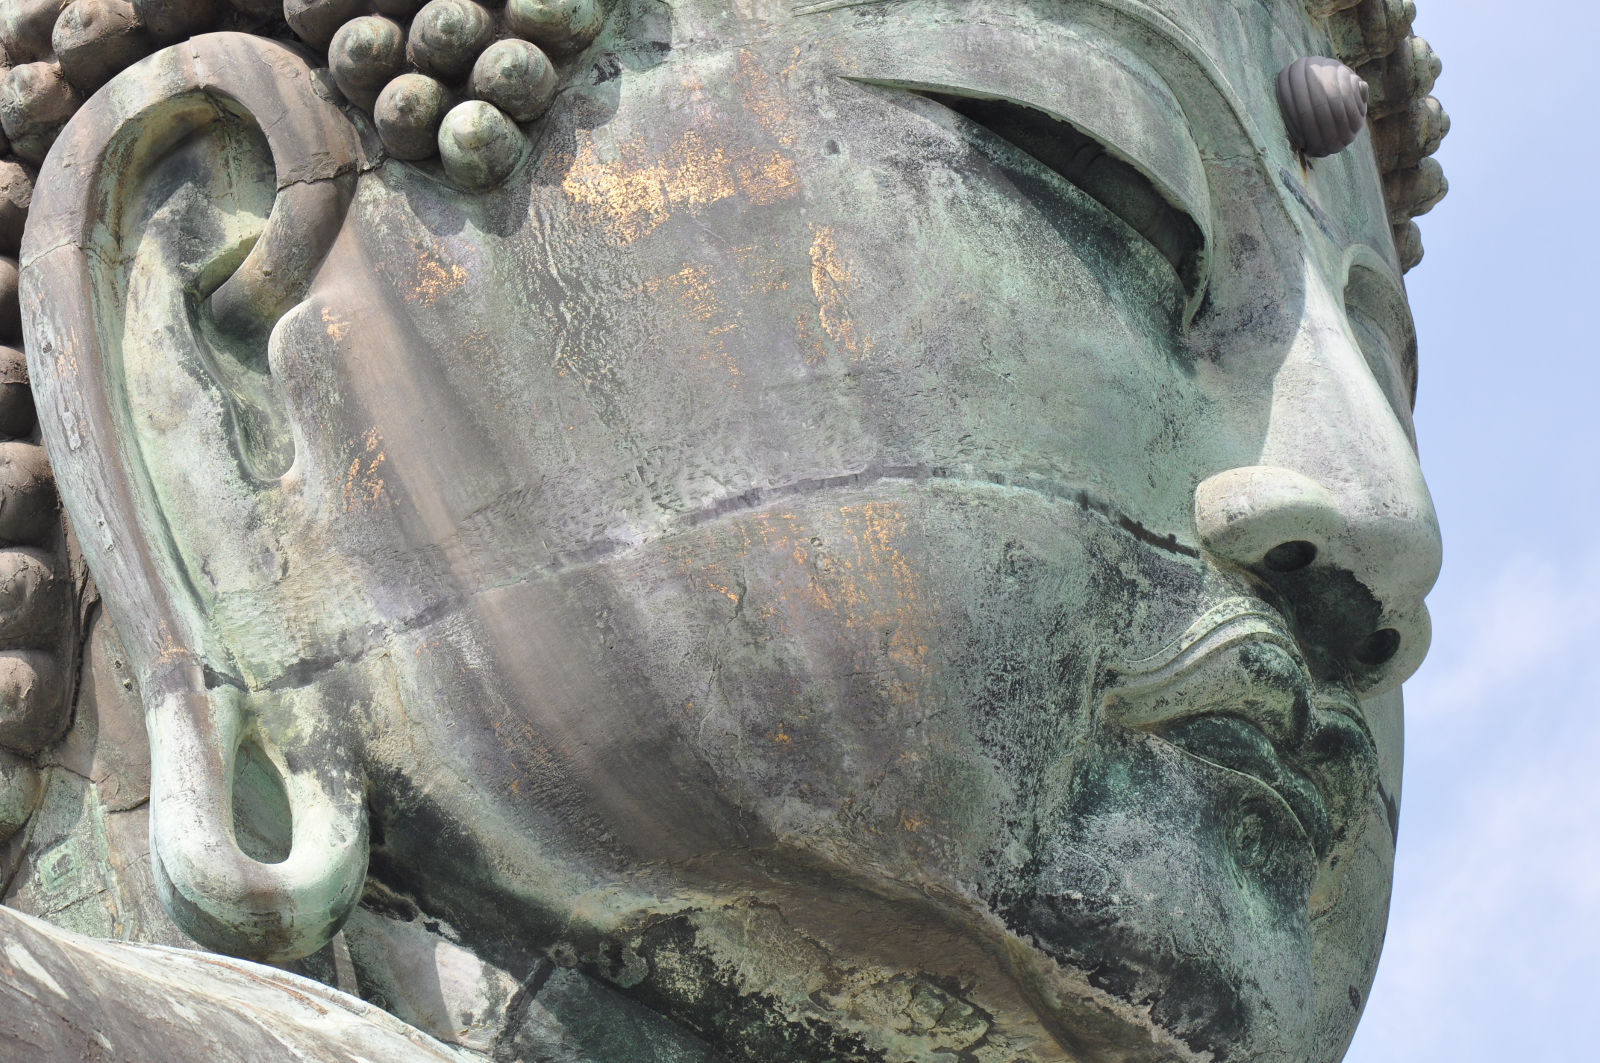 13th C Buddha, Kamakura - July 2009